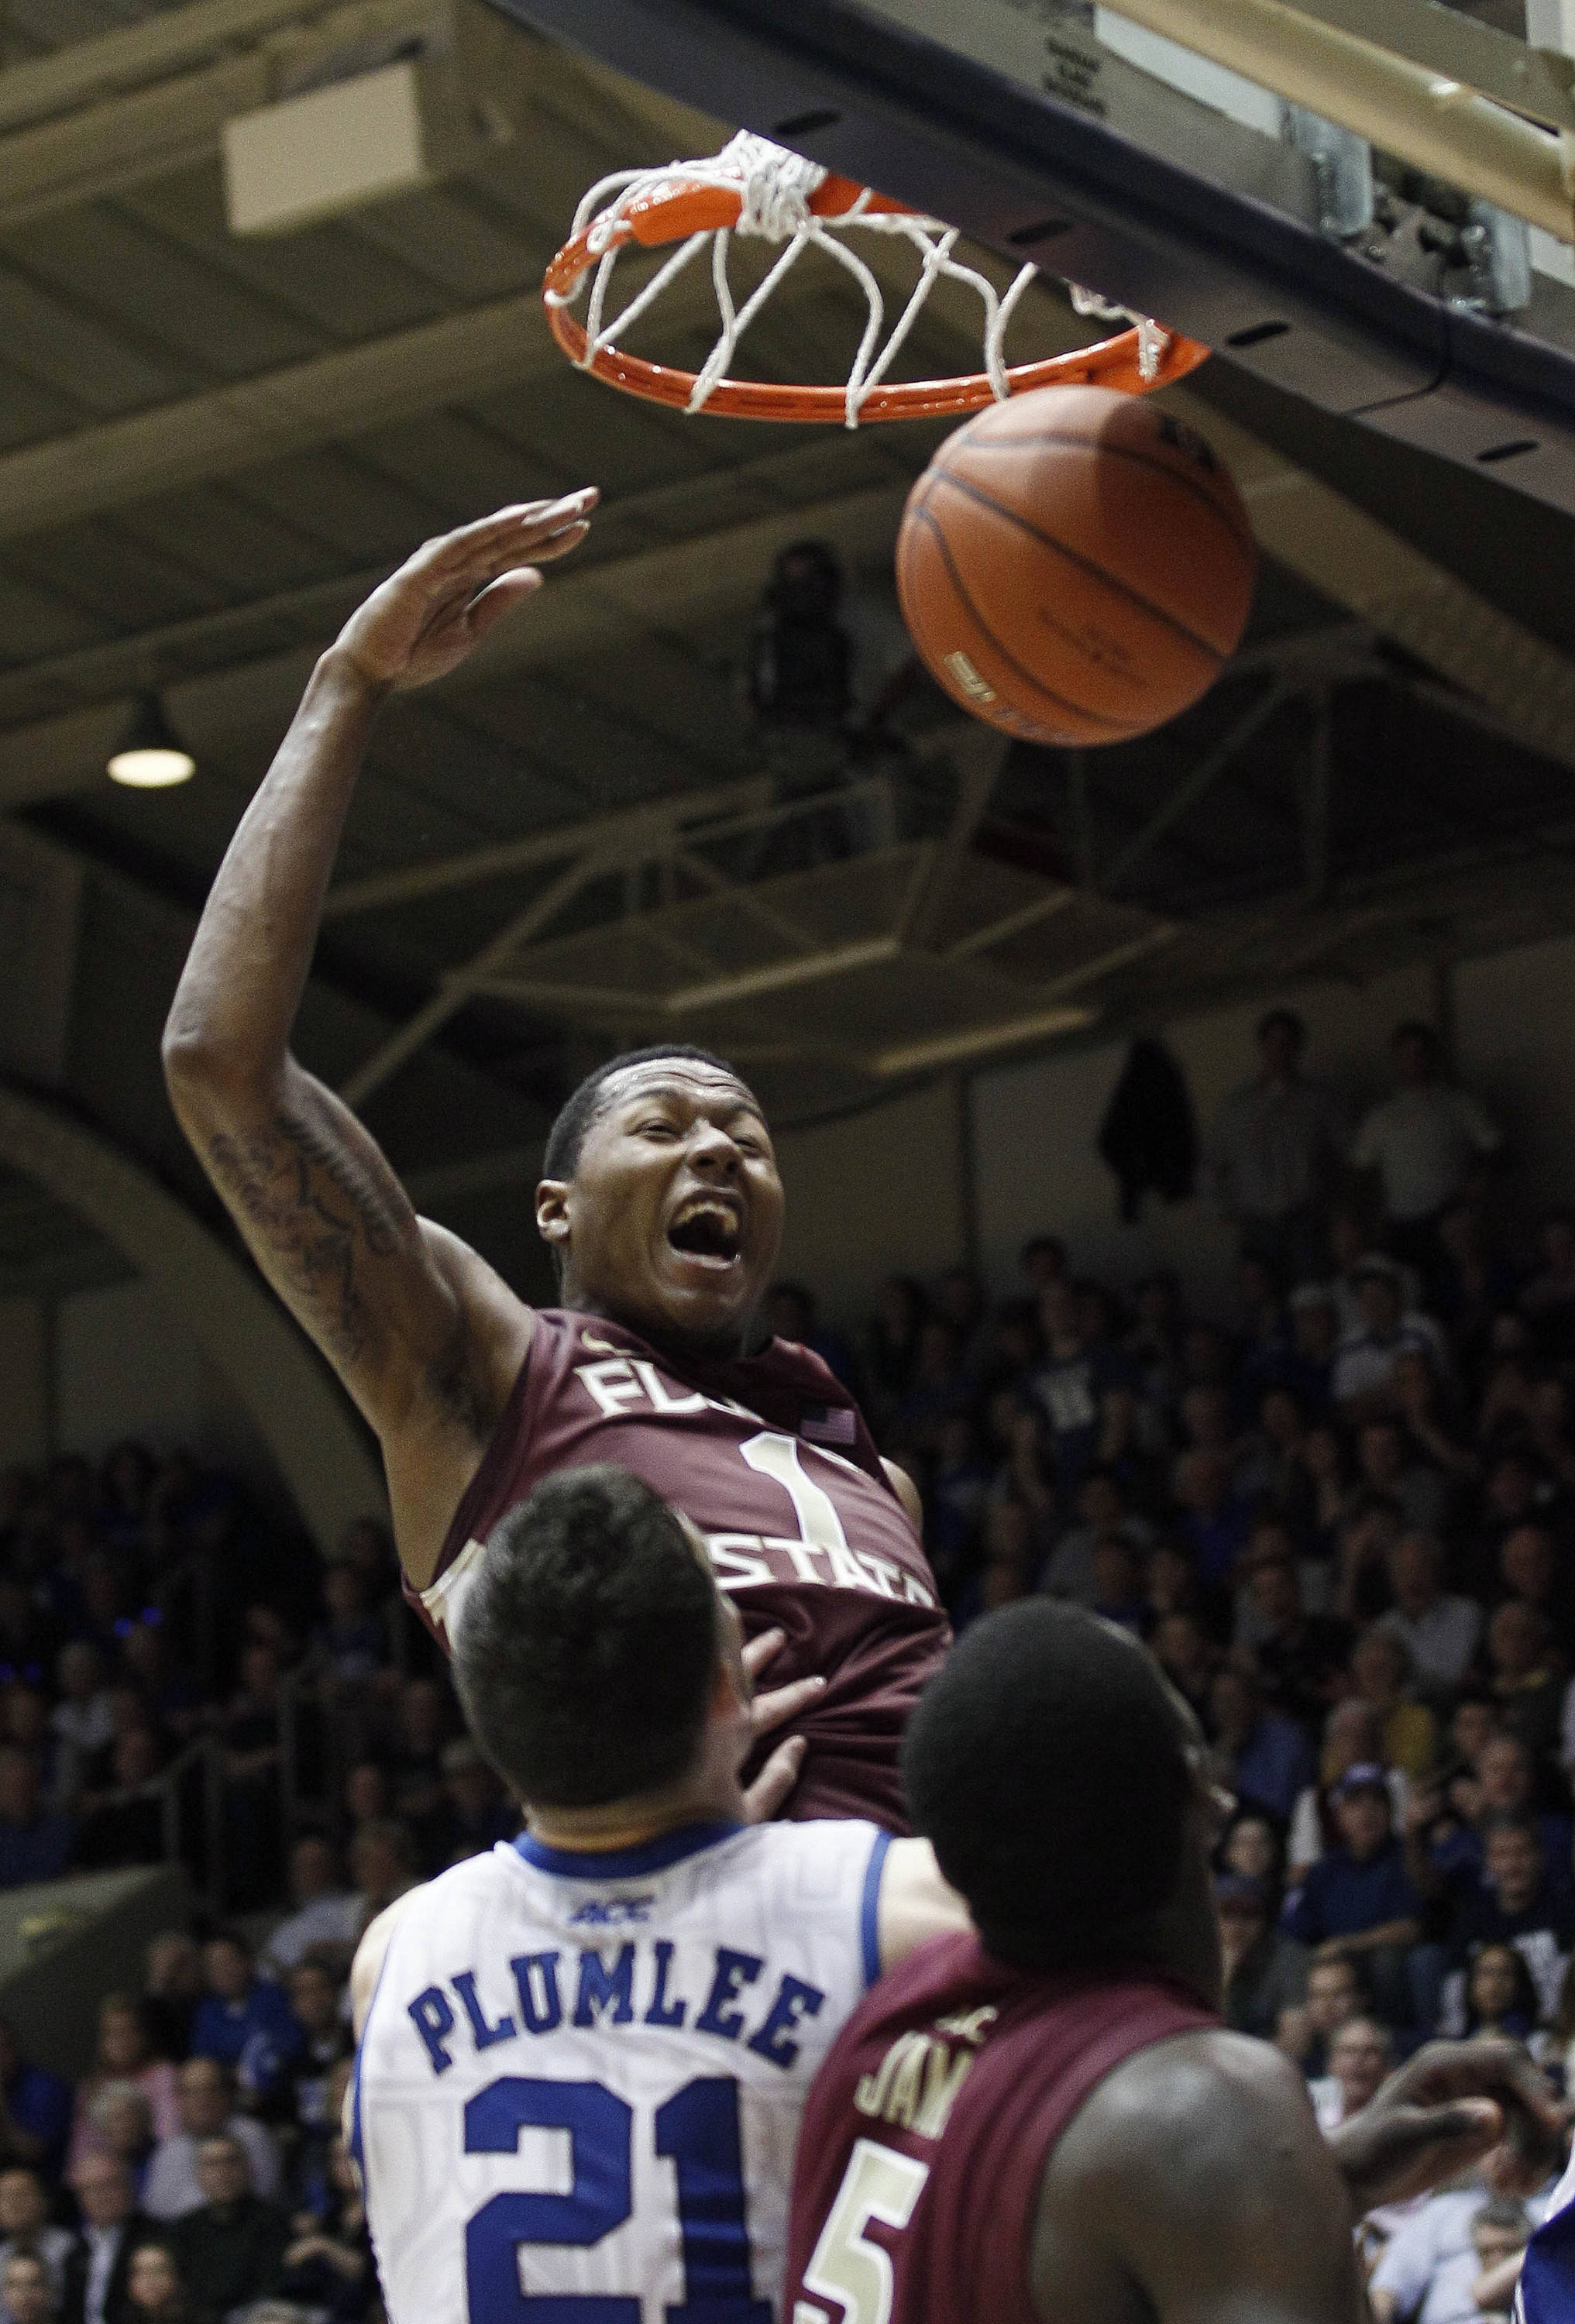 Florida State's Xavier Gibson (1) dunks as Duke's Miles Plumlee (21) watches during the second half. (AP Photo/Gerry Broome)